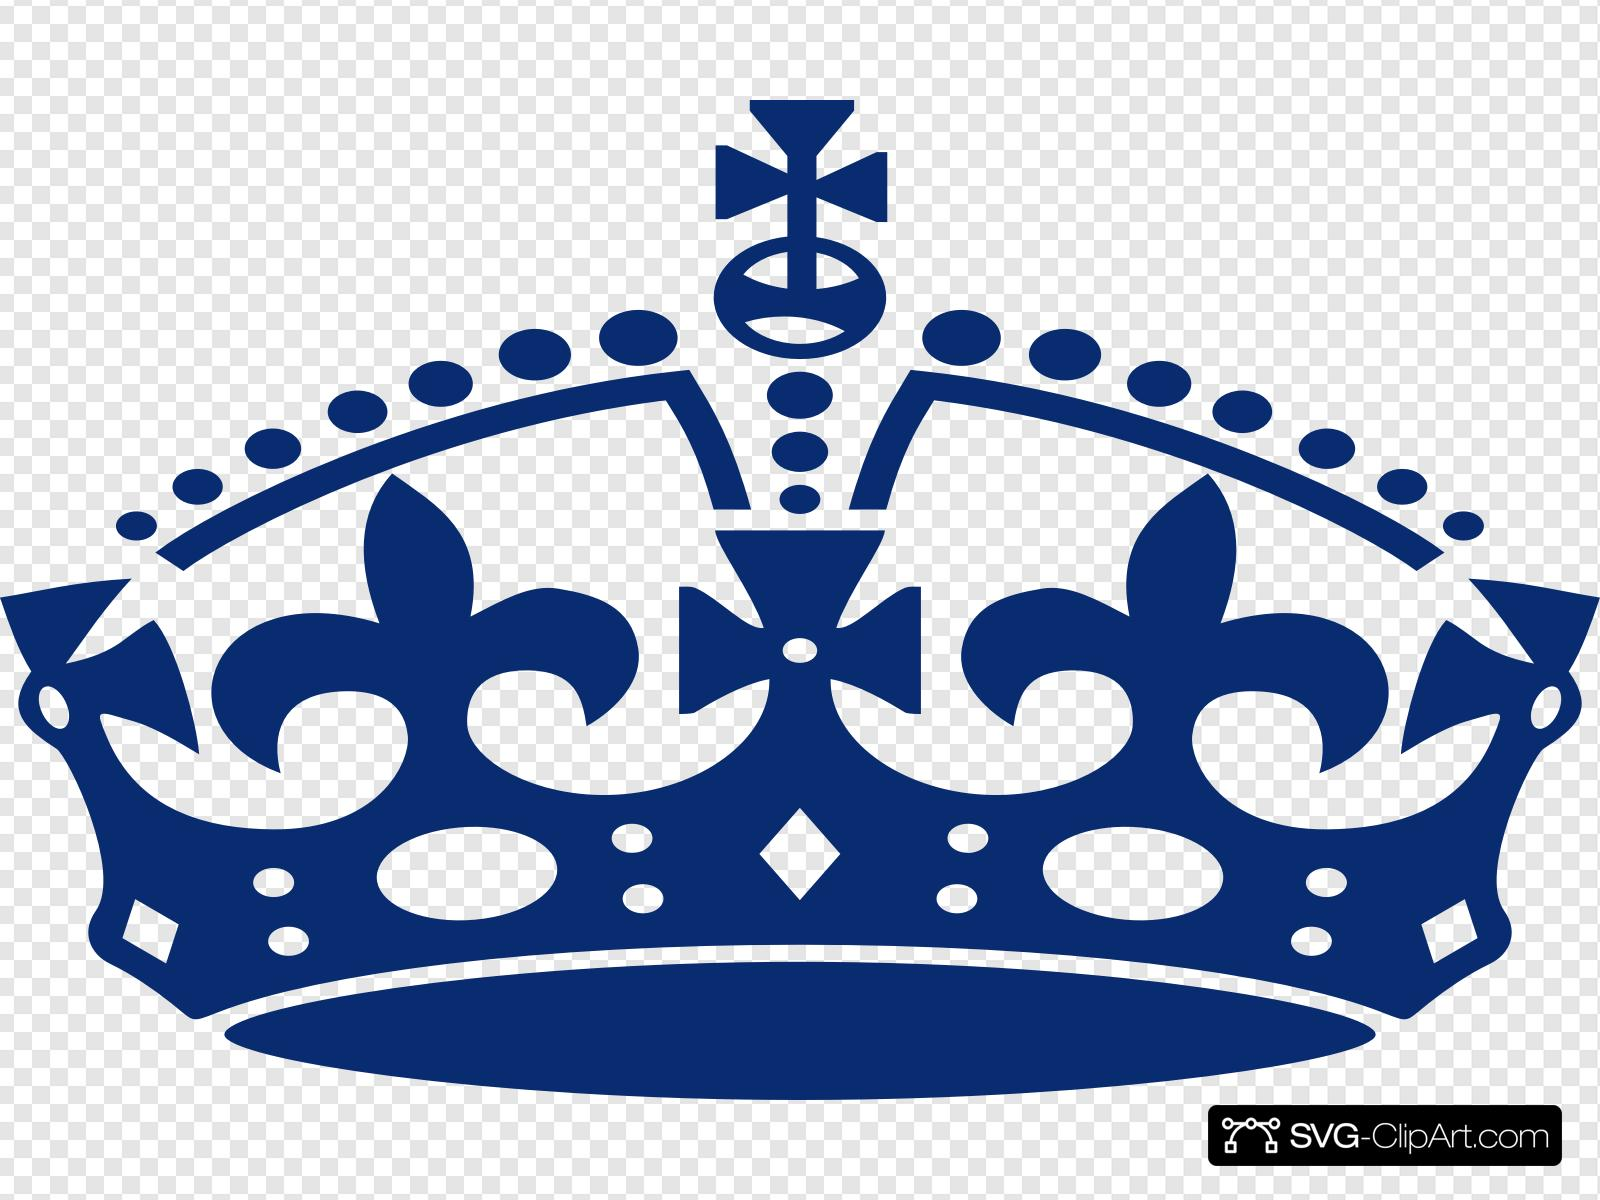 Blue Jubilee Crown Clip art, Icon and SVG.